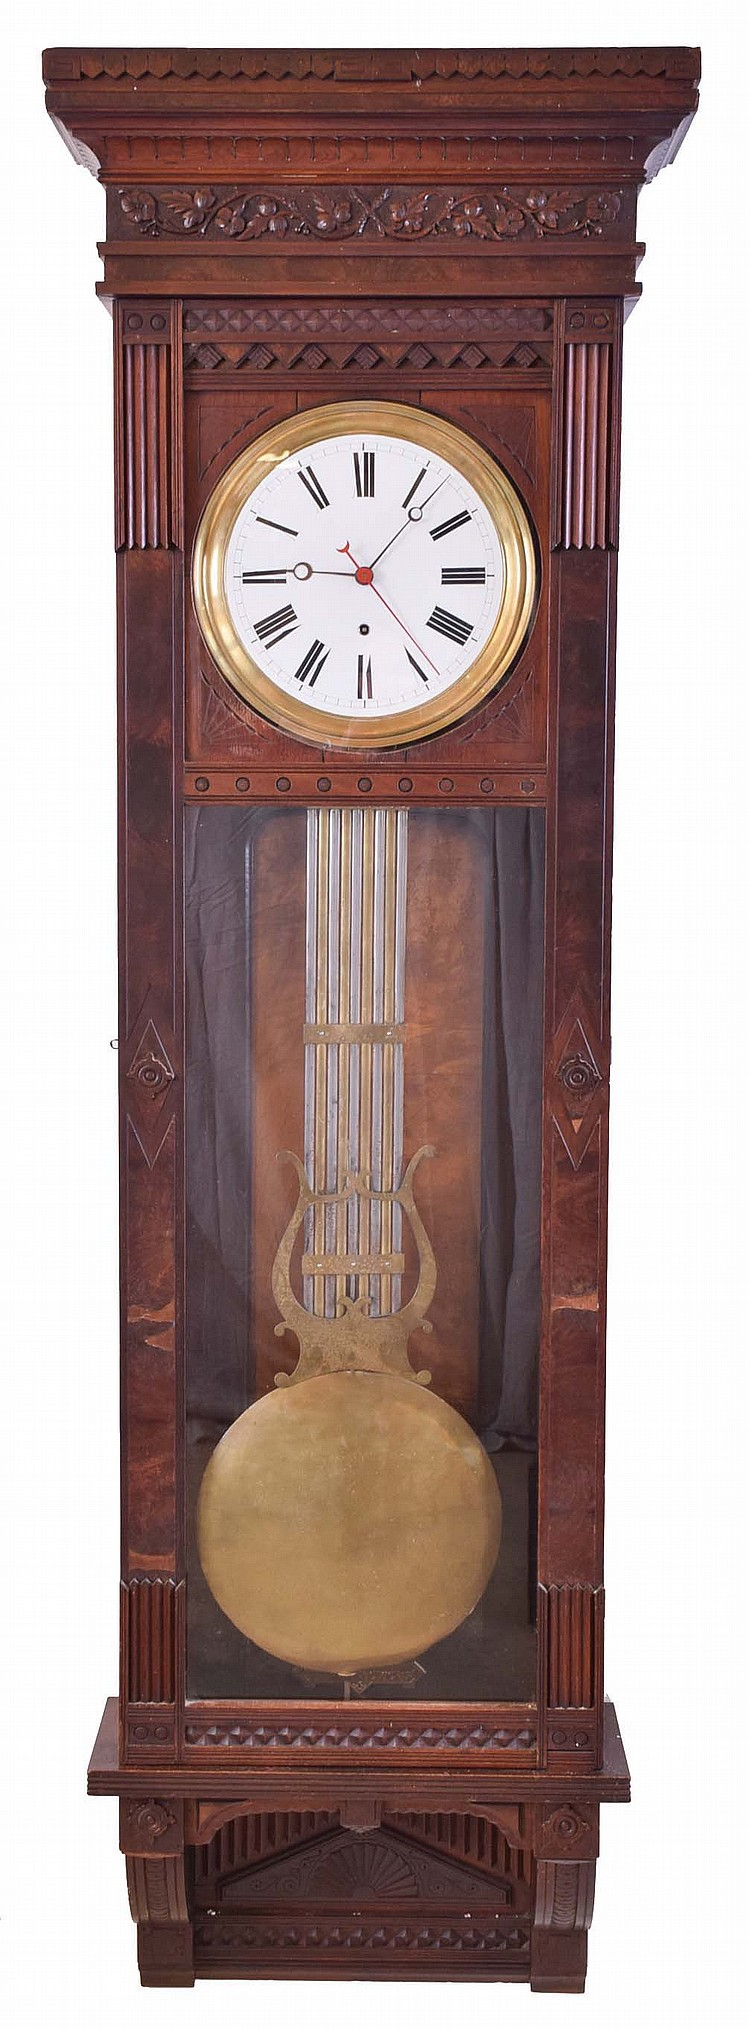 Waterbury Clock Co., Waterbury, Conn.,